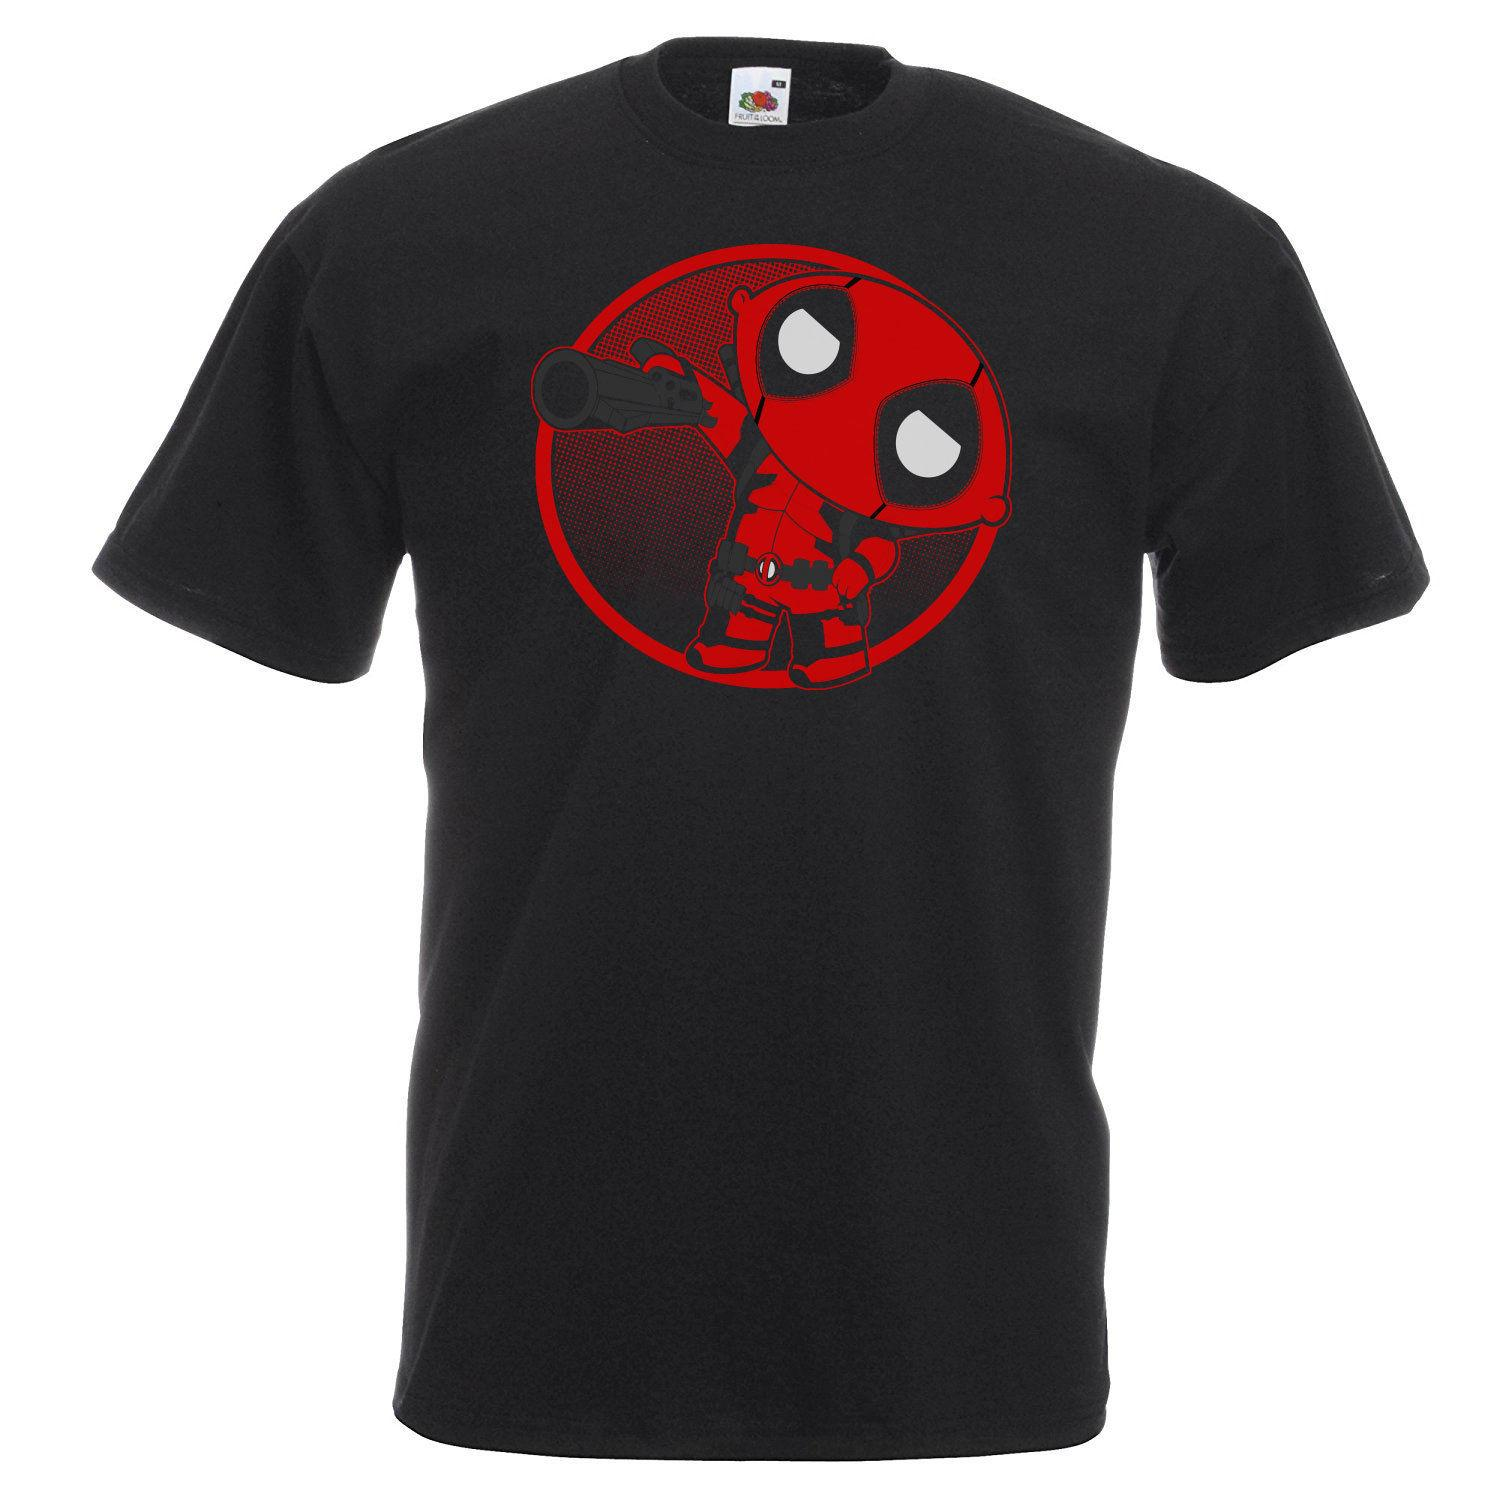 921521ad62061 Men's Deadpool Stewie Griffin T-Shirt Funny Mash Up Shirt Gift IdeaFunny  free shipping Unisex Casual gift